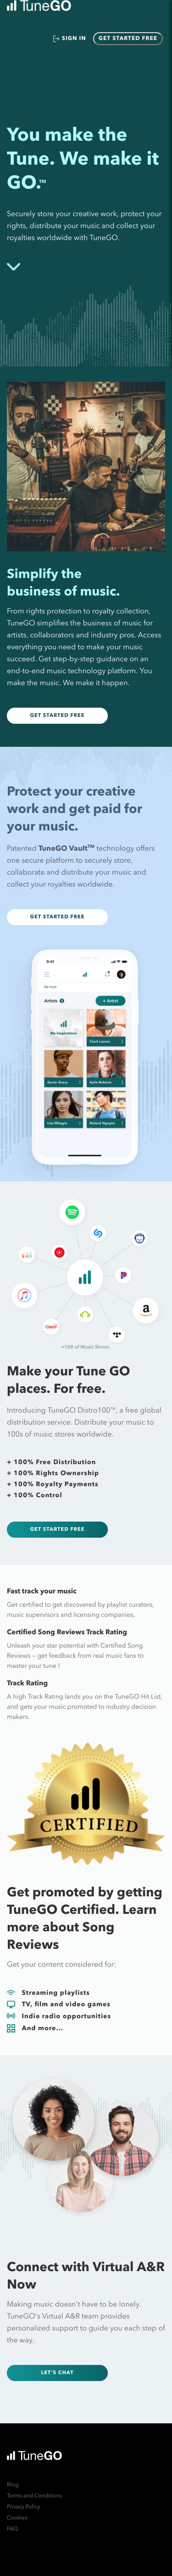 Example of Design for Arts & Entertainment, Music & Audio, Mobile Landing Page by tunego.com | Mobile Landing Page Design